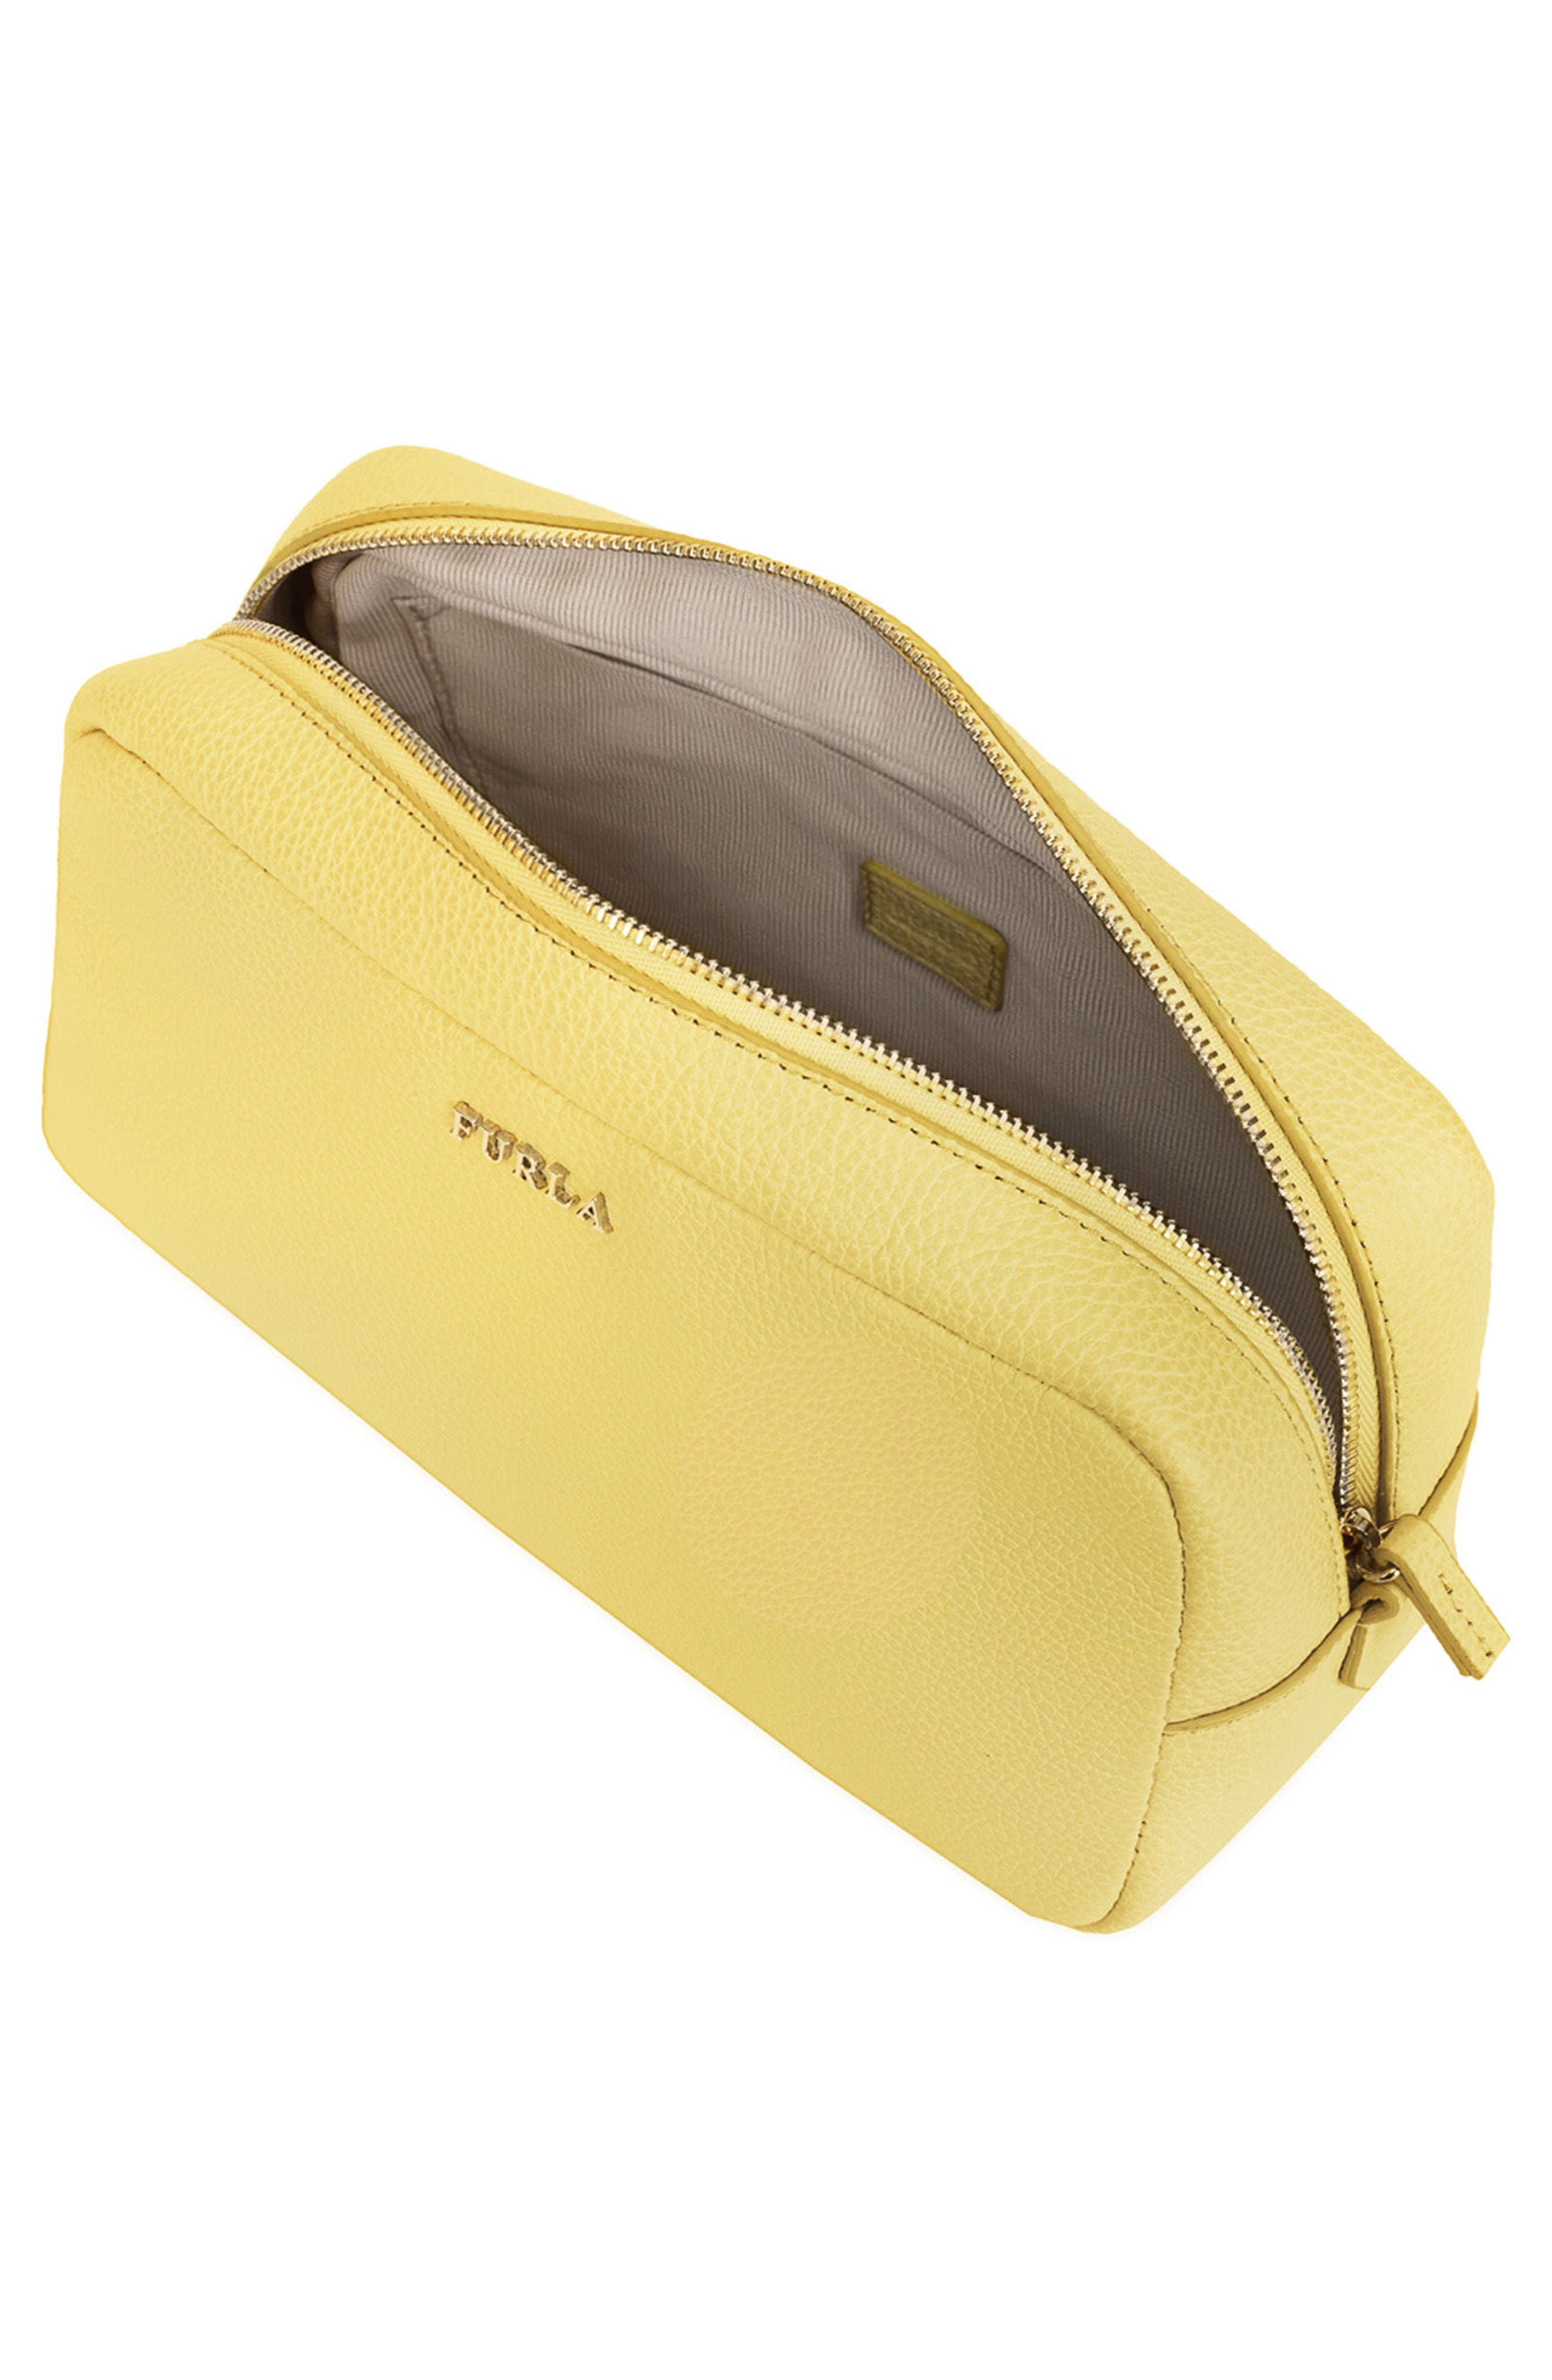 Bloom Extra Large Leather Cosmetic Bag,                             Alternate thumbnail 2, color,                             Cedro